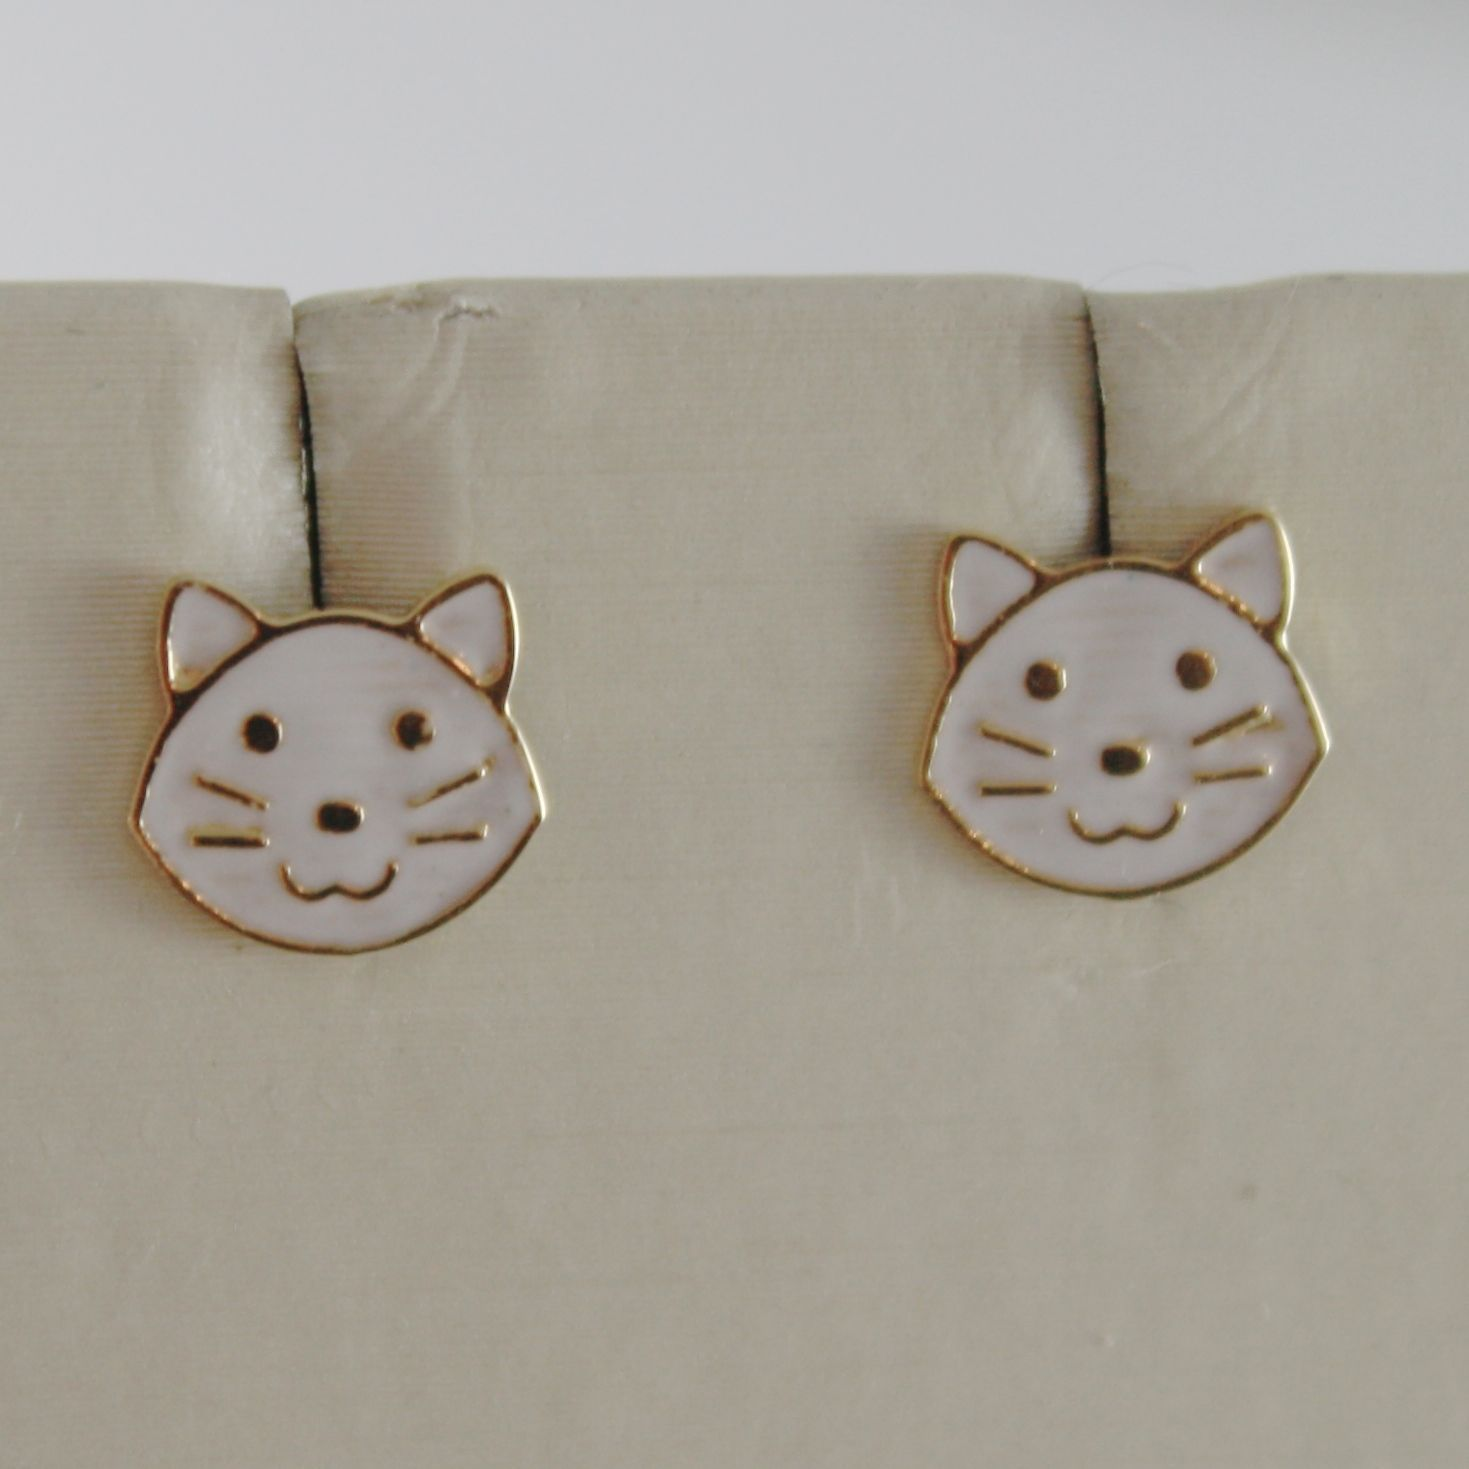 18K YELLOW GOLD PENDANT CHILD CAT EARRINGS GLAZED CATS, FLAT, MADE IN ITALY